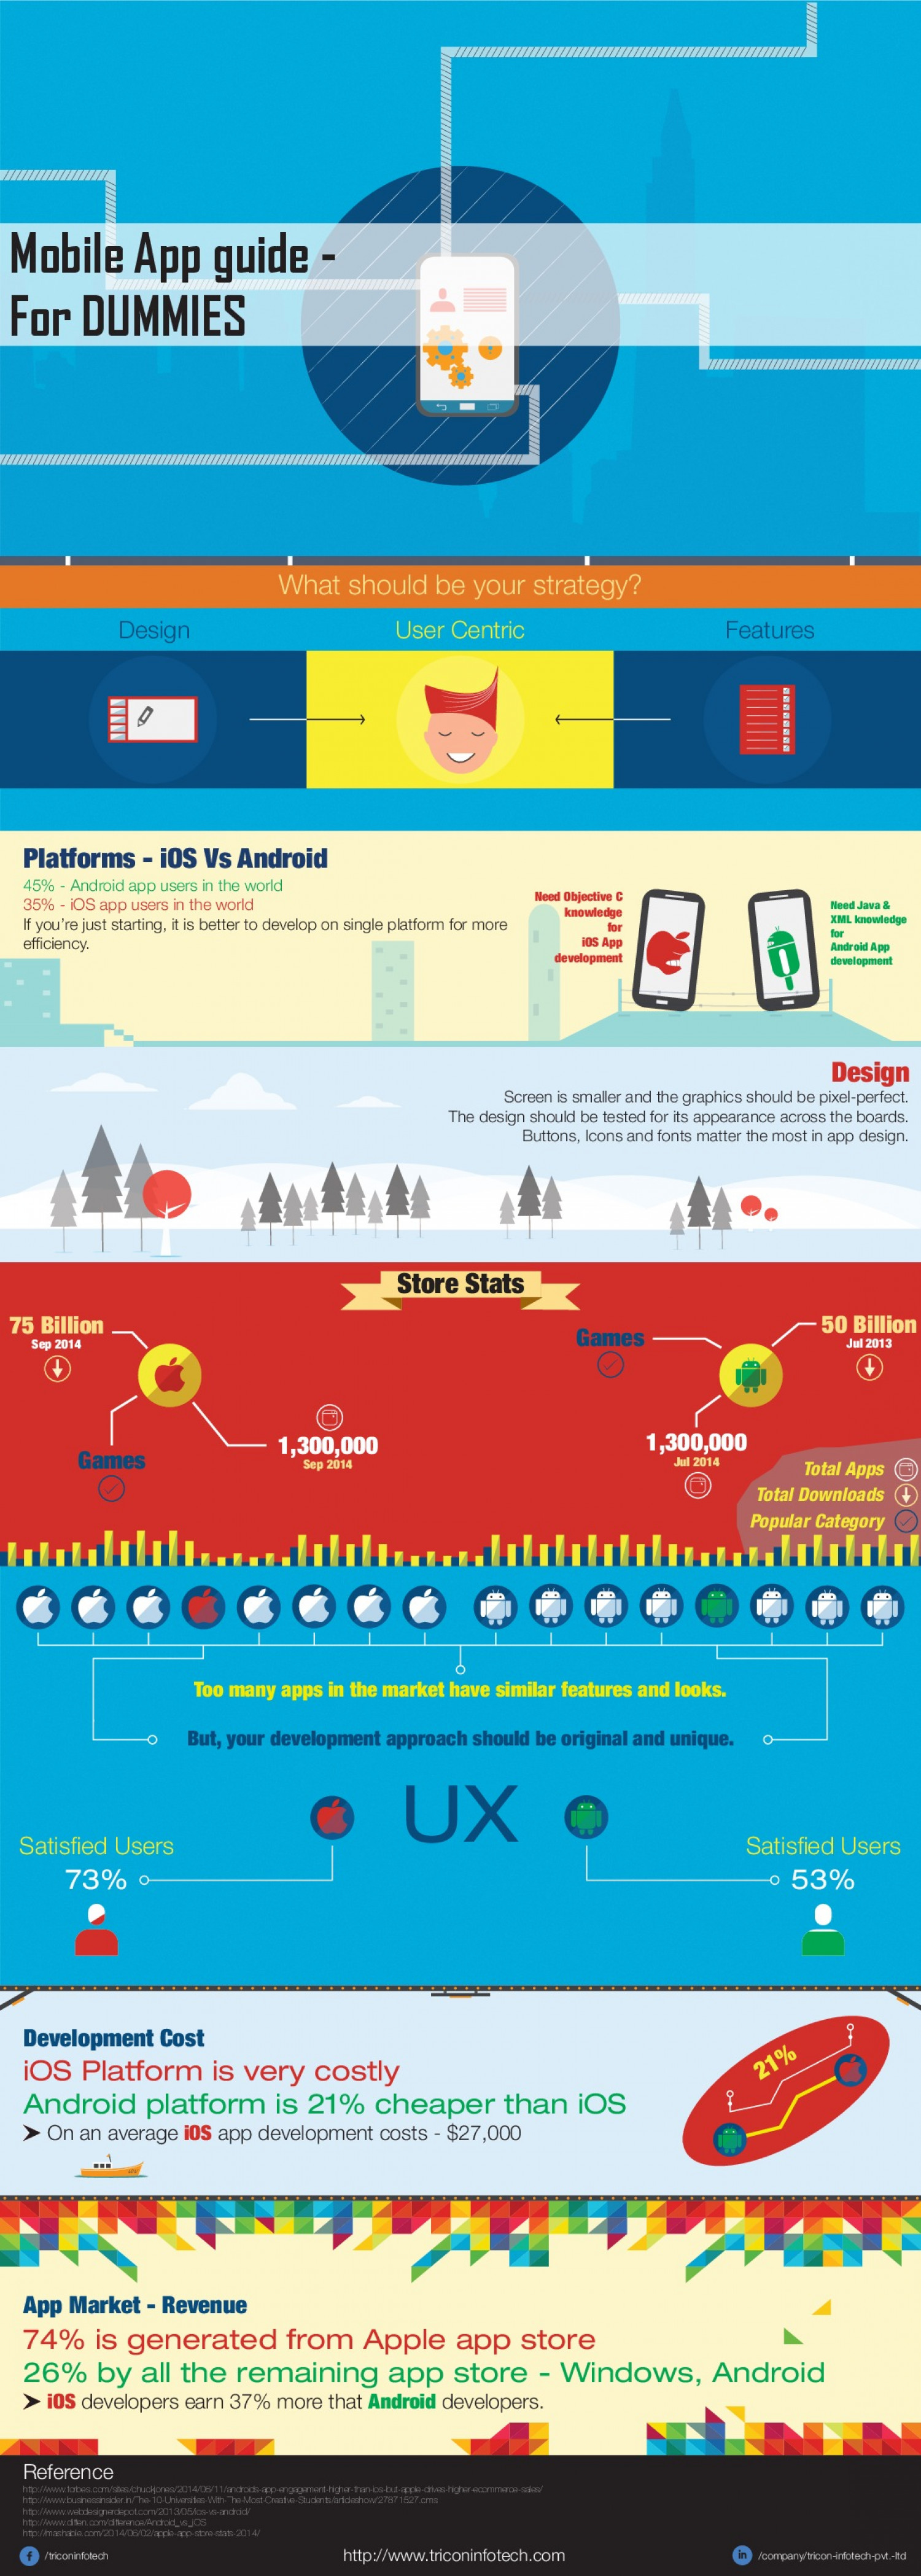 Mobile App Guide - For Dummies Infographic